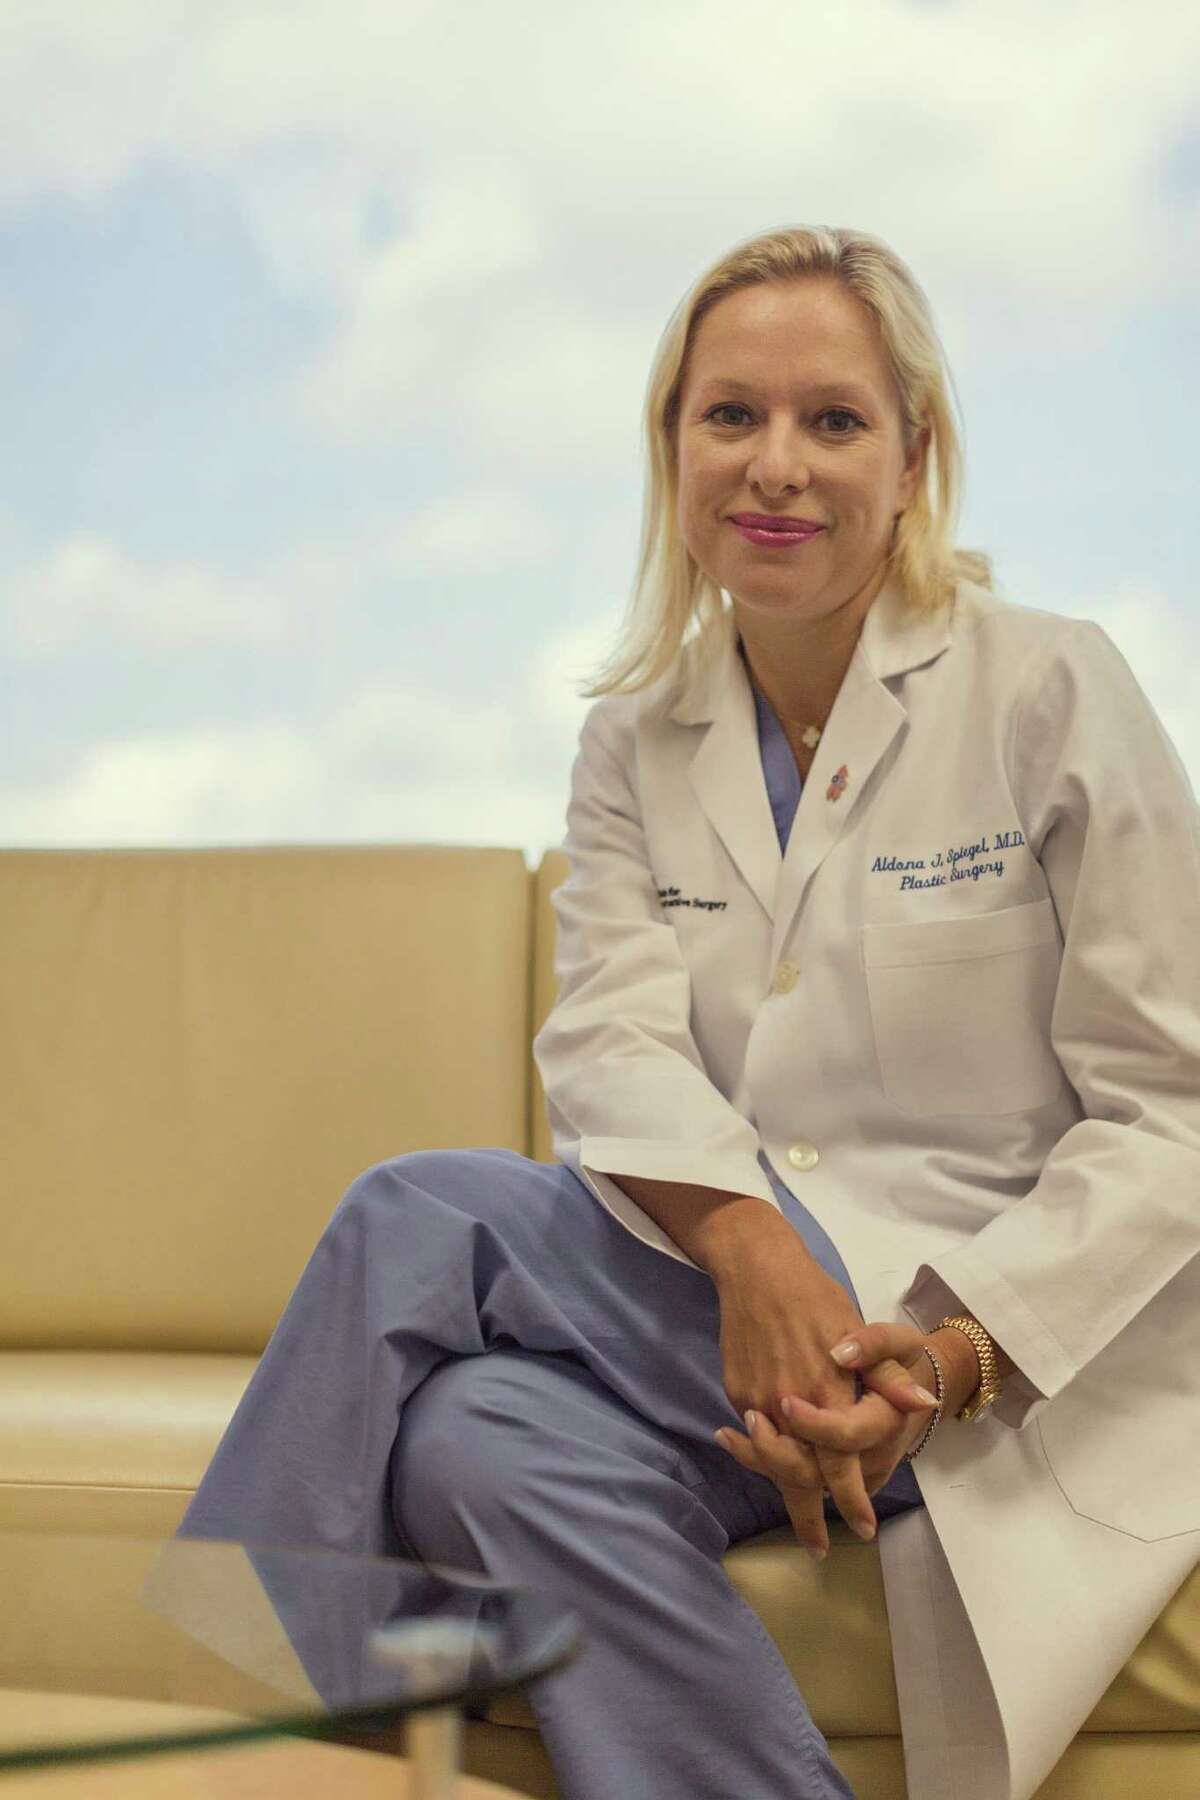 Dr. Aldona Spiegel, director of Houston Methodist Hospital's Center for Breast Restoration, says the treatment to restore sensation has had good results. She hopes her study will make more women aware of the technique.